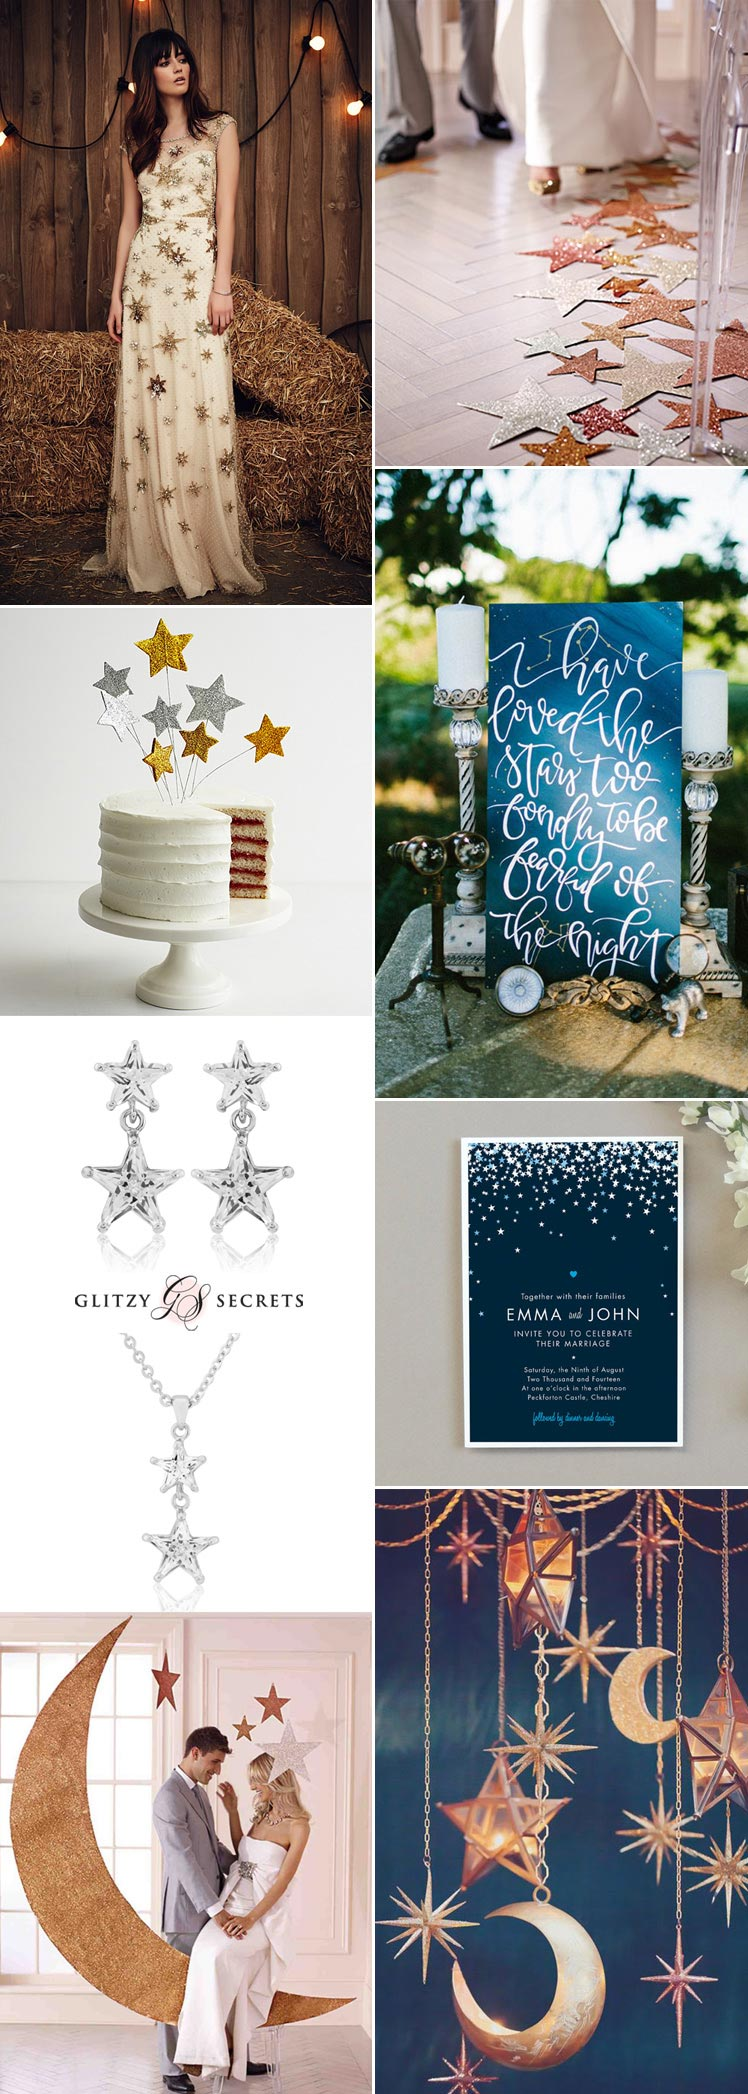 a sensational star wedding theme